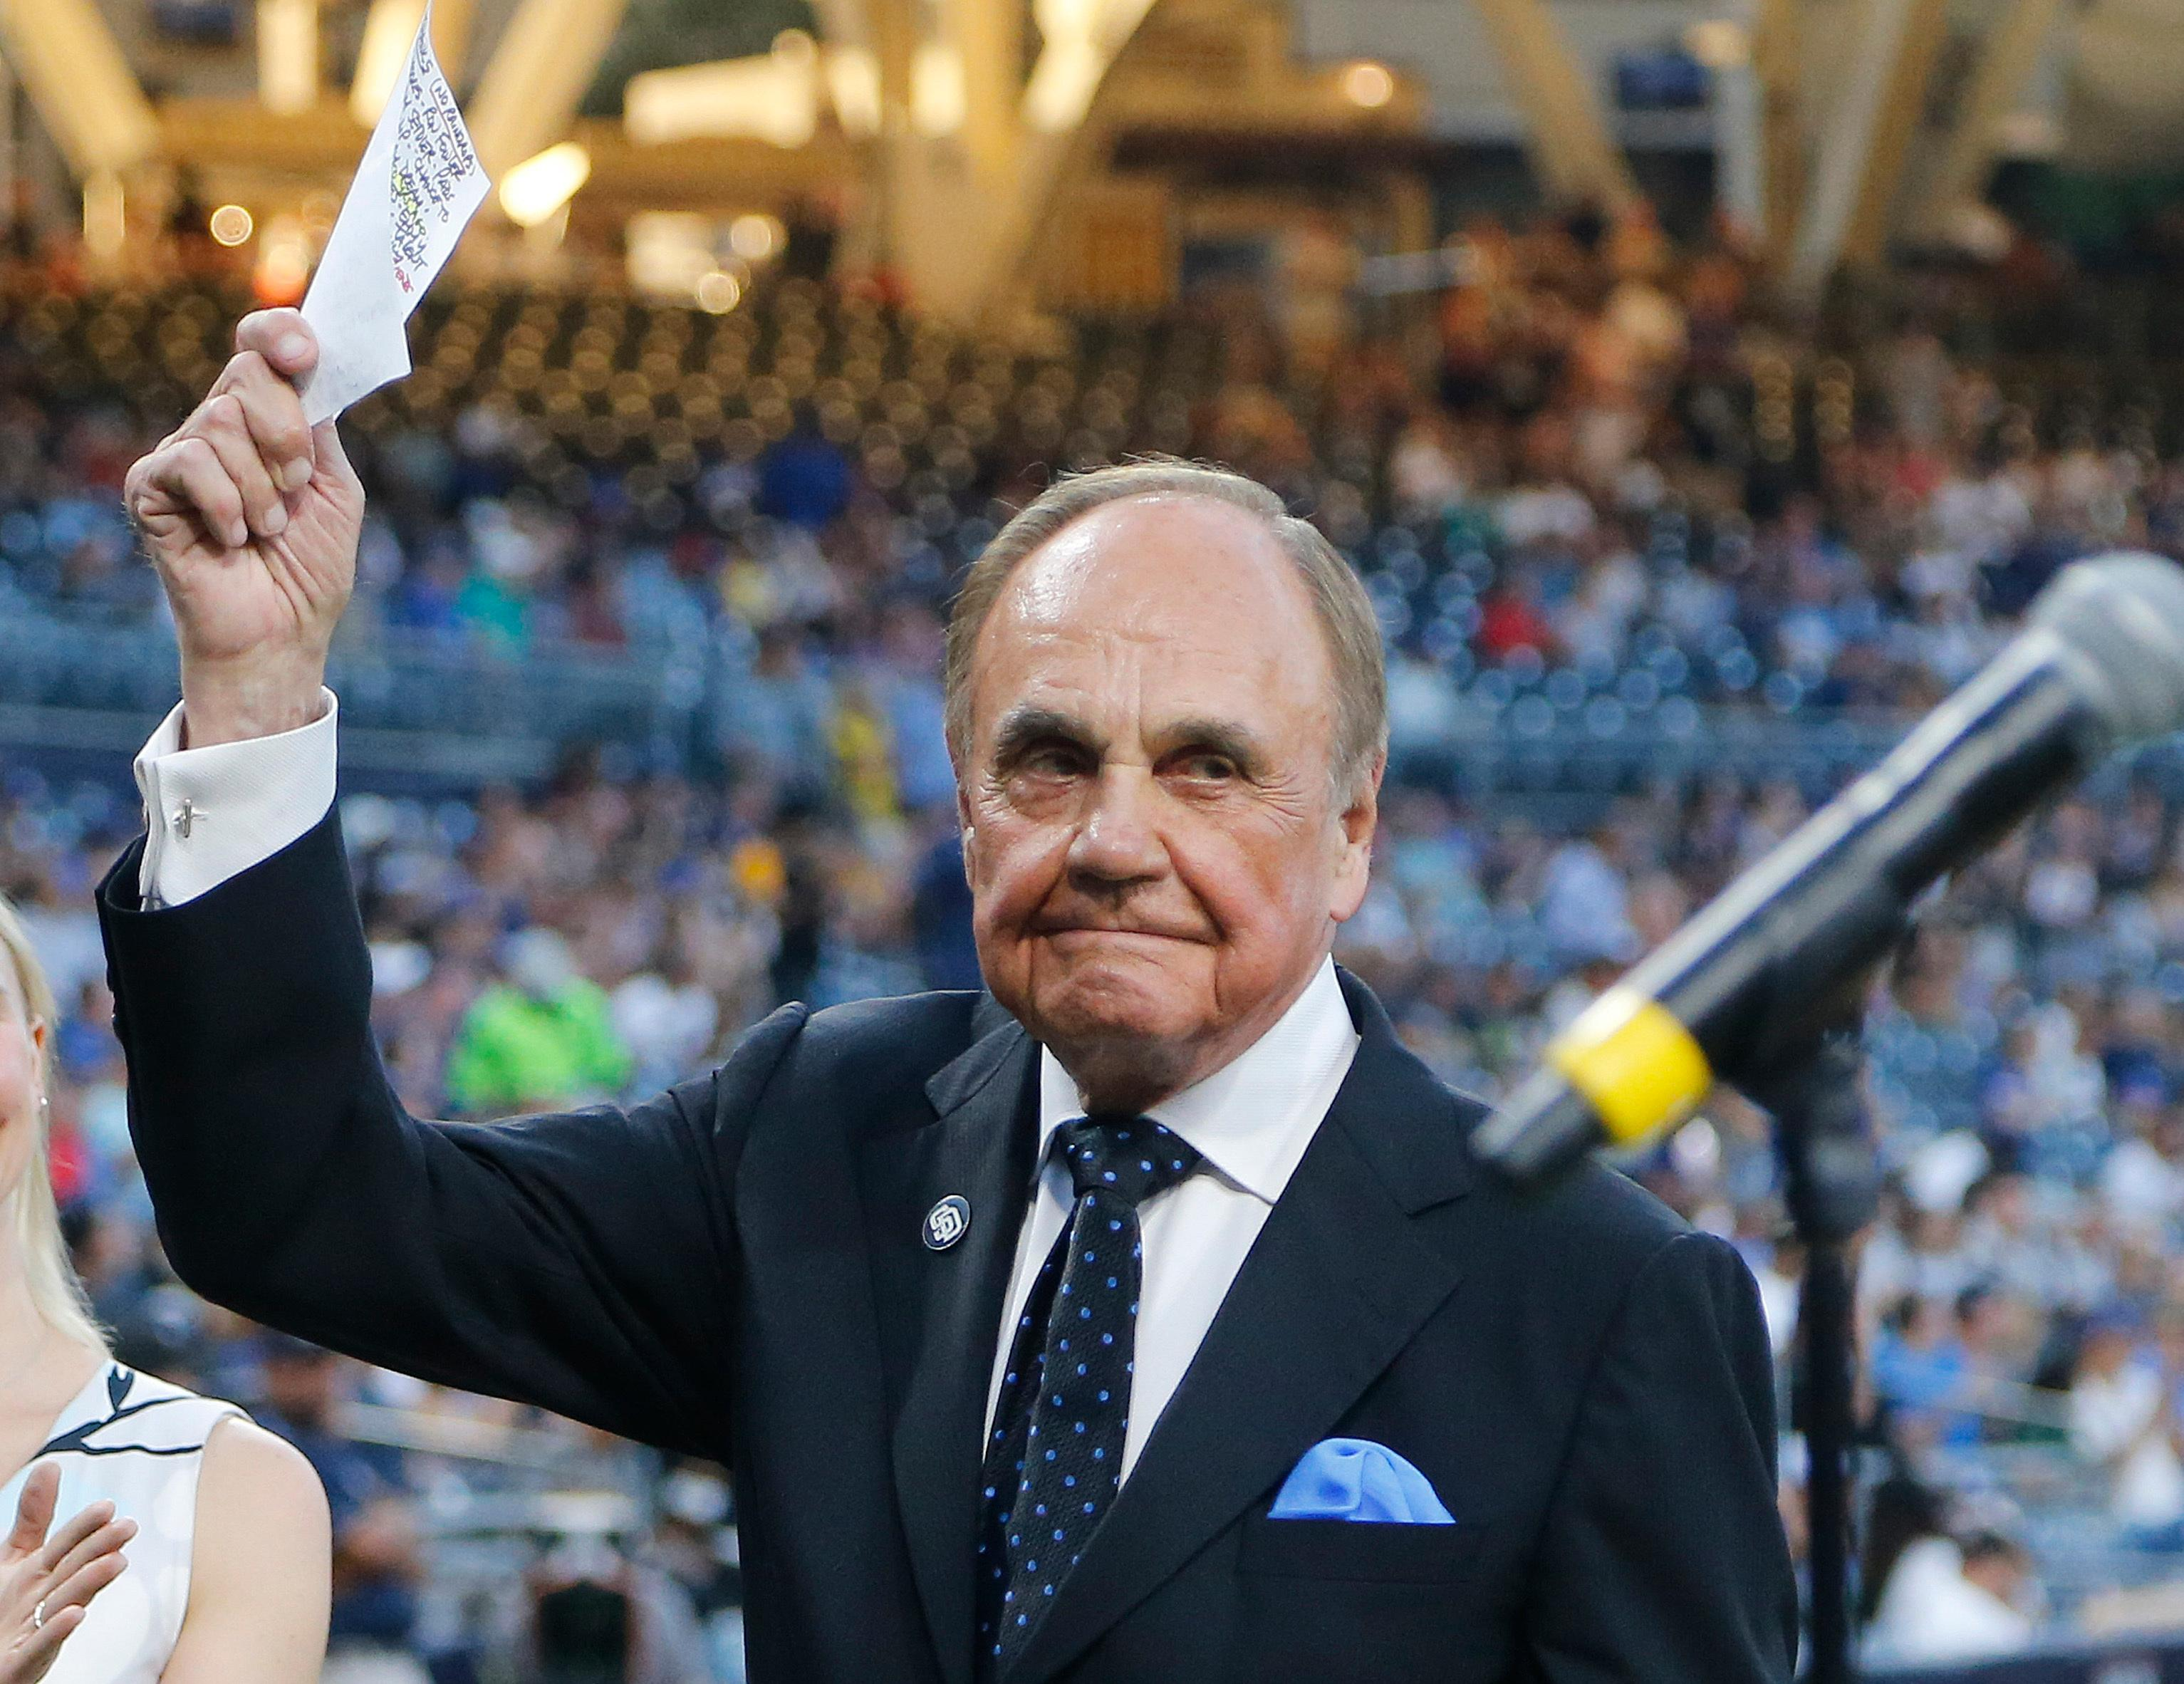 FILE - In this Sept. 29, 2016, file photo, San Diego Padres broadcaster Dick Enberg waves to crowd at a retirement ceremony prior to the Padres' final home baseball game of the season, against the Los Angeles Dodgers in San Diego. (AP Photo/Lenny Ignelzi, File)